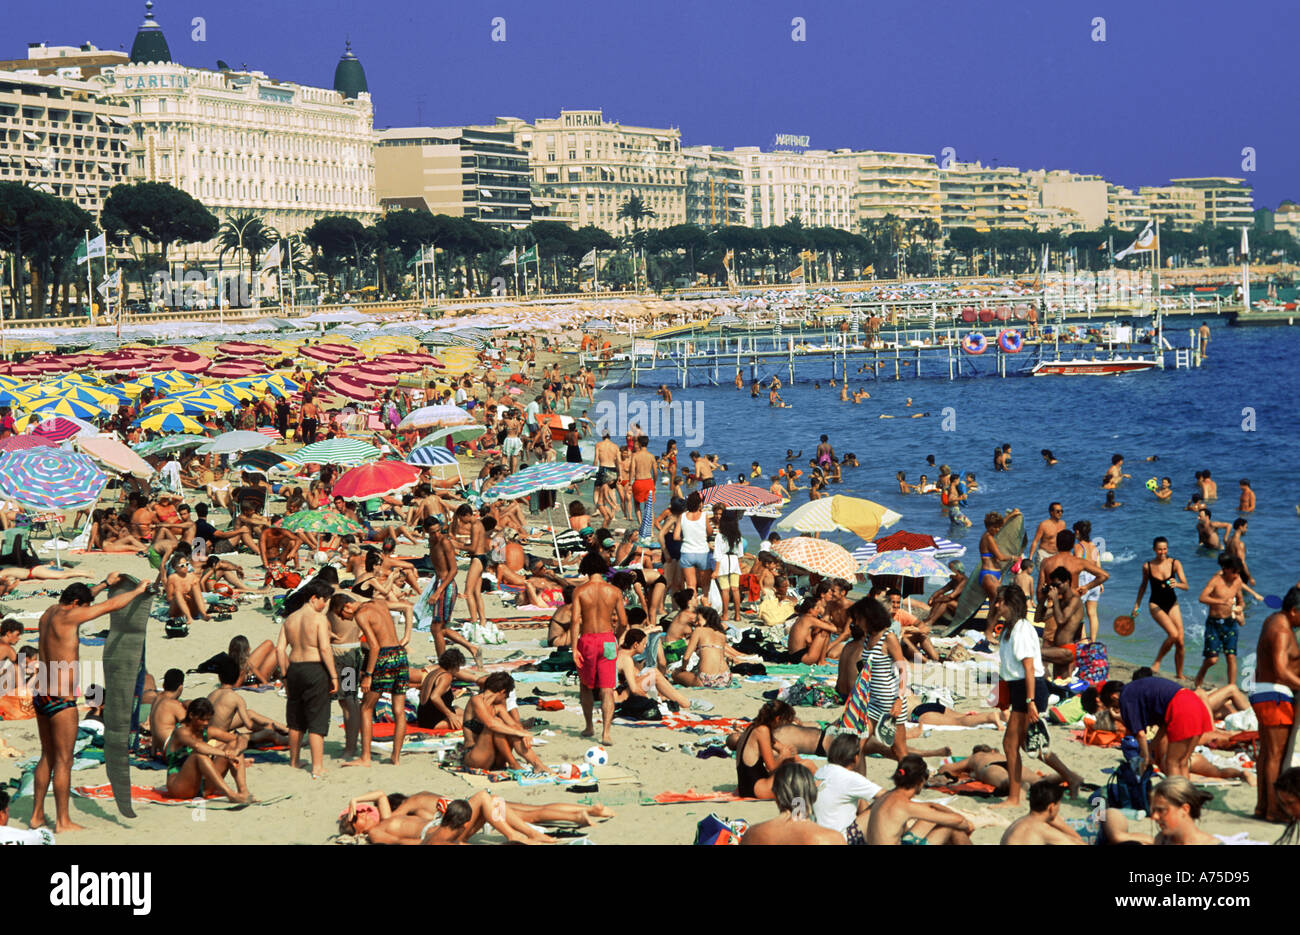 cannes-beach-french-riviera-france-A75D9